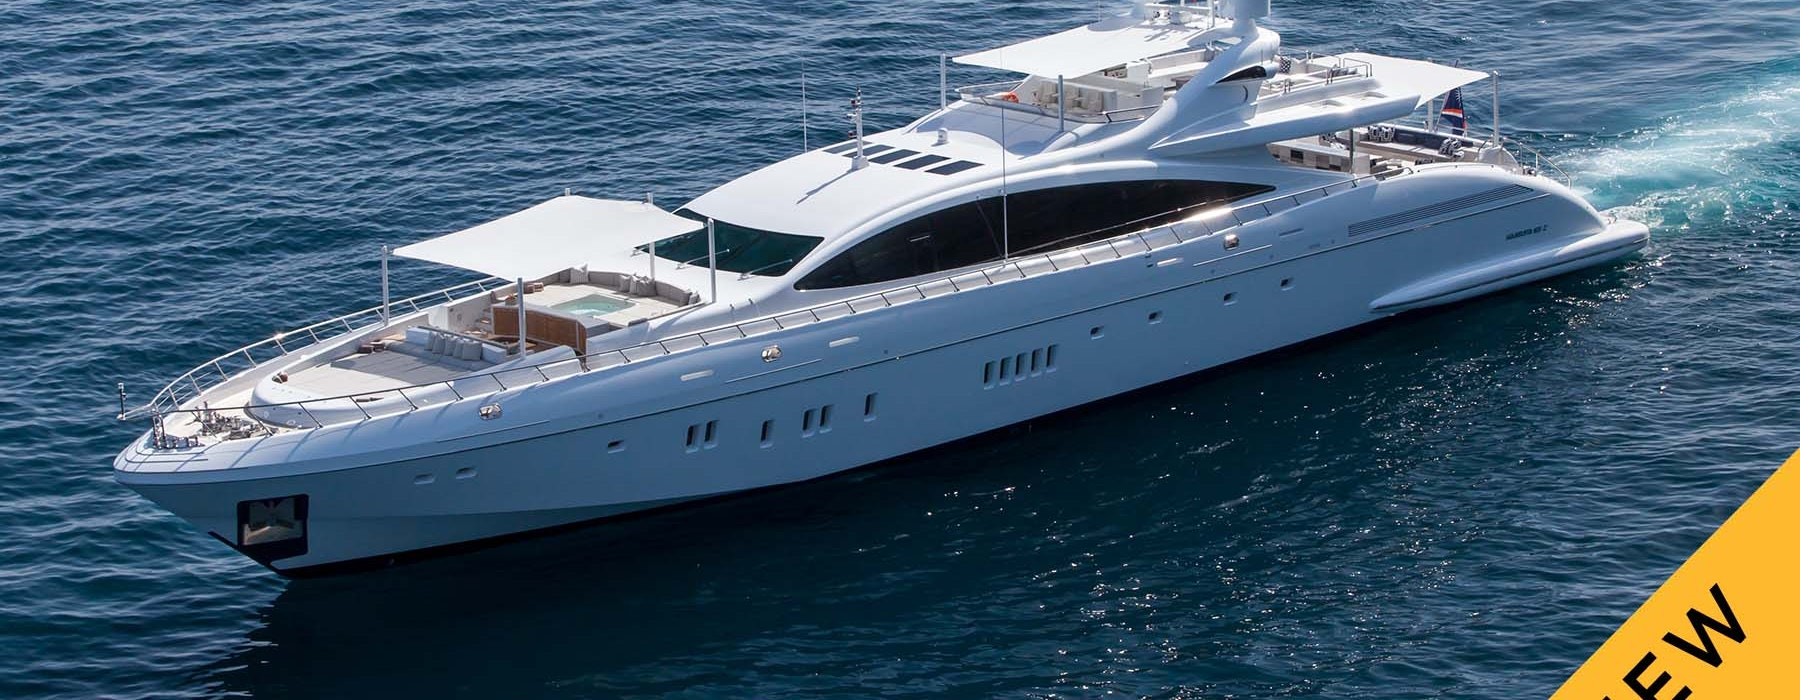 APRICITY Mangusta yacht for sale NEW